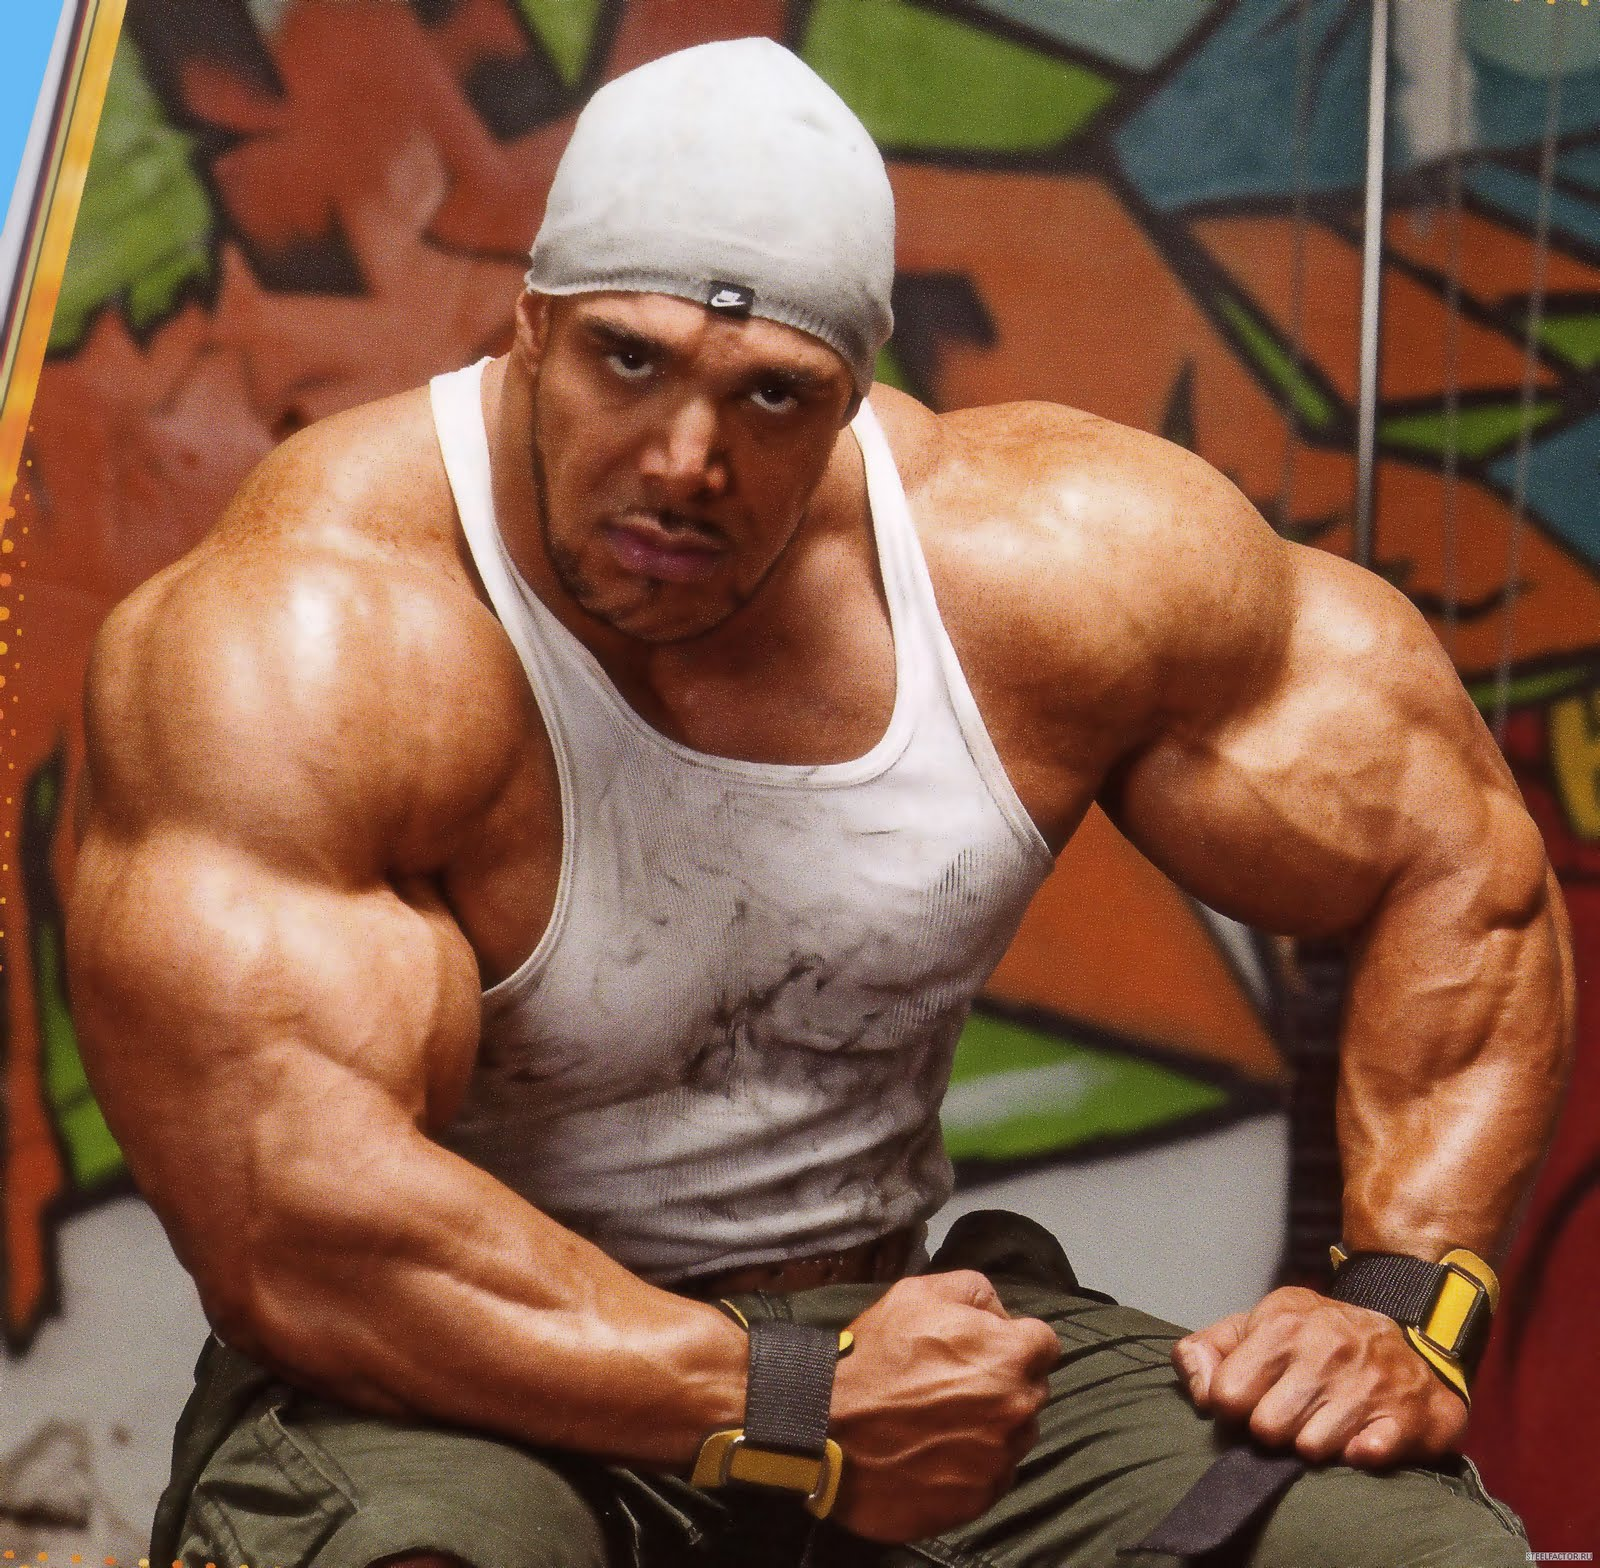 who is stronger and bigger, rich piana or zack khan